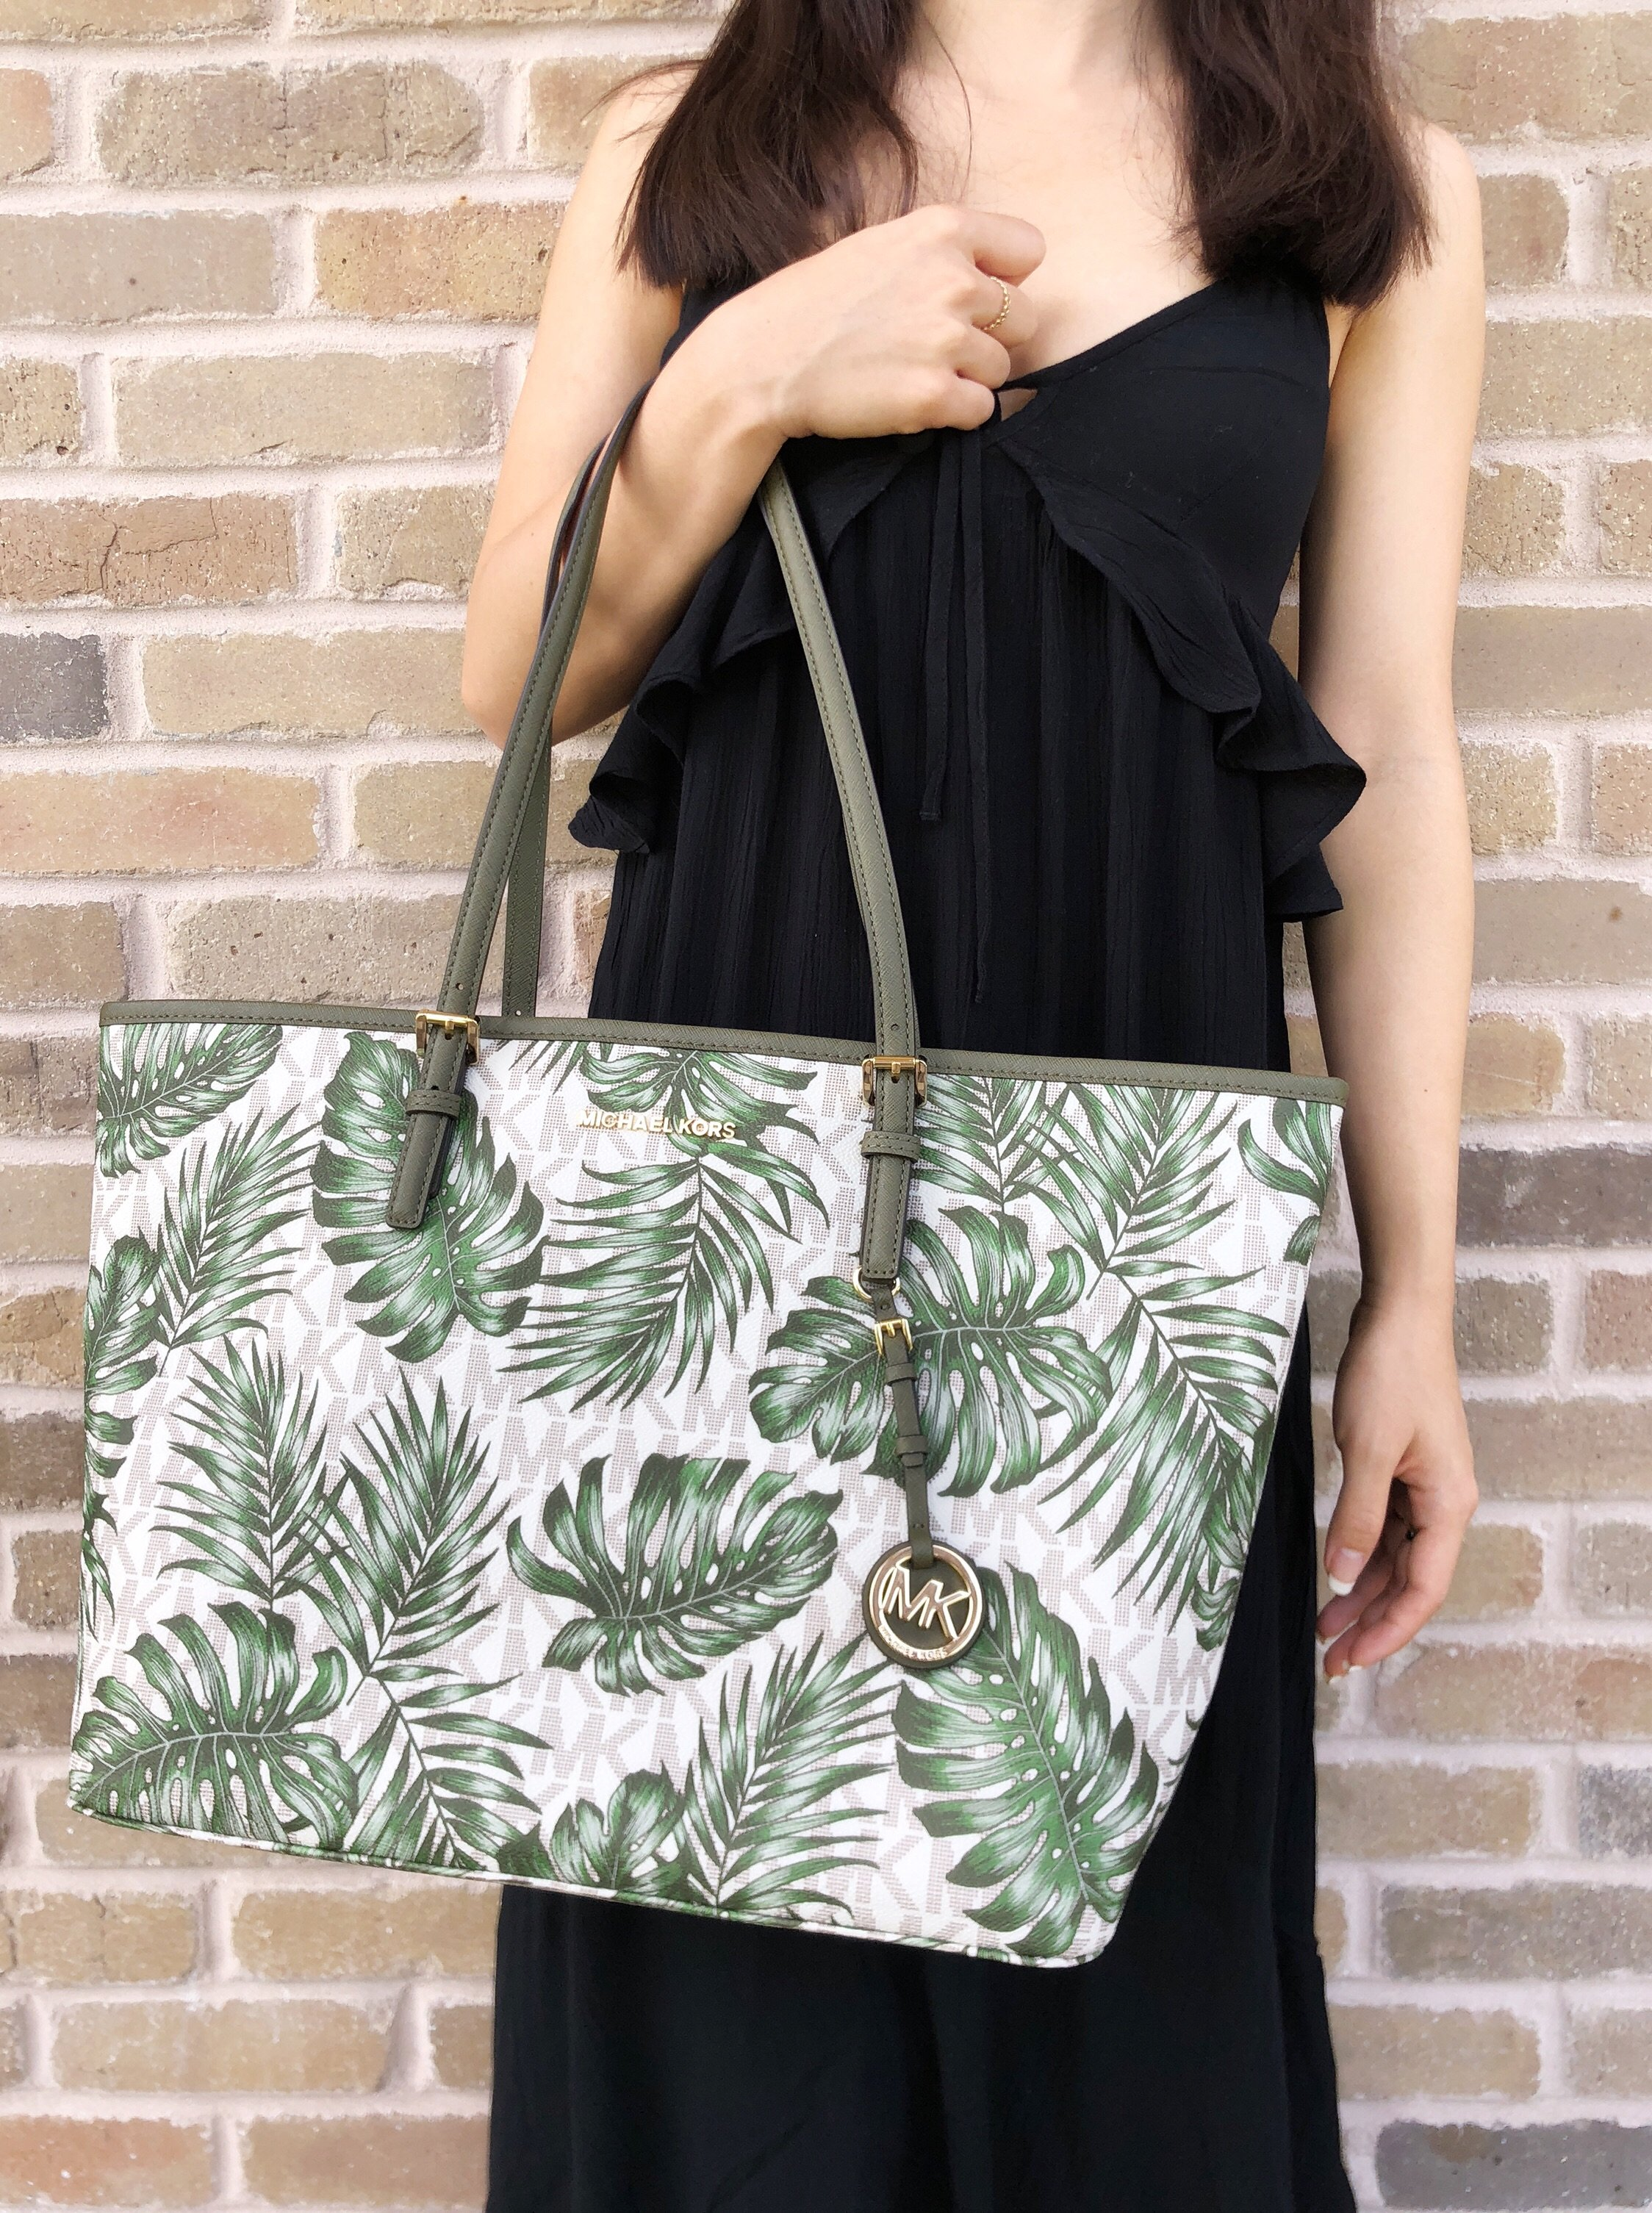 82940422bfc1a6 Michael Kors Jet Set Travel Large Carryall Tote Vanilla Olive Green Palm  Leaves